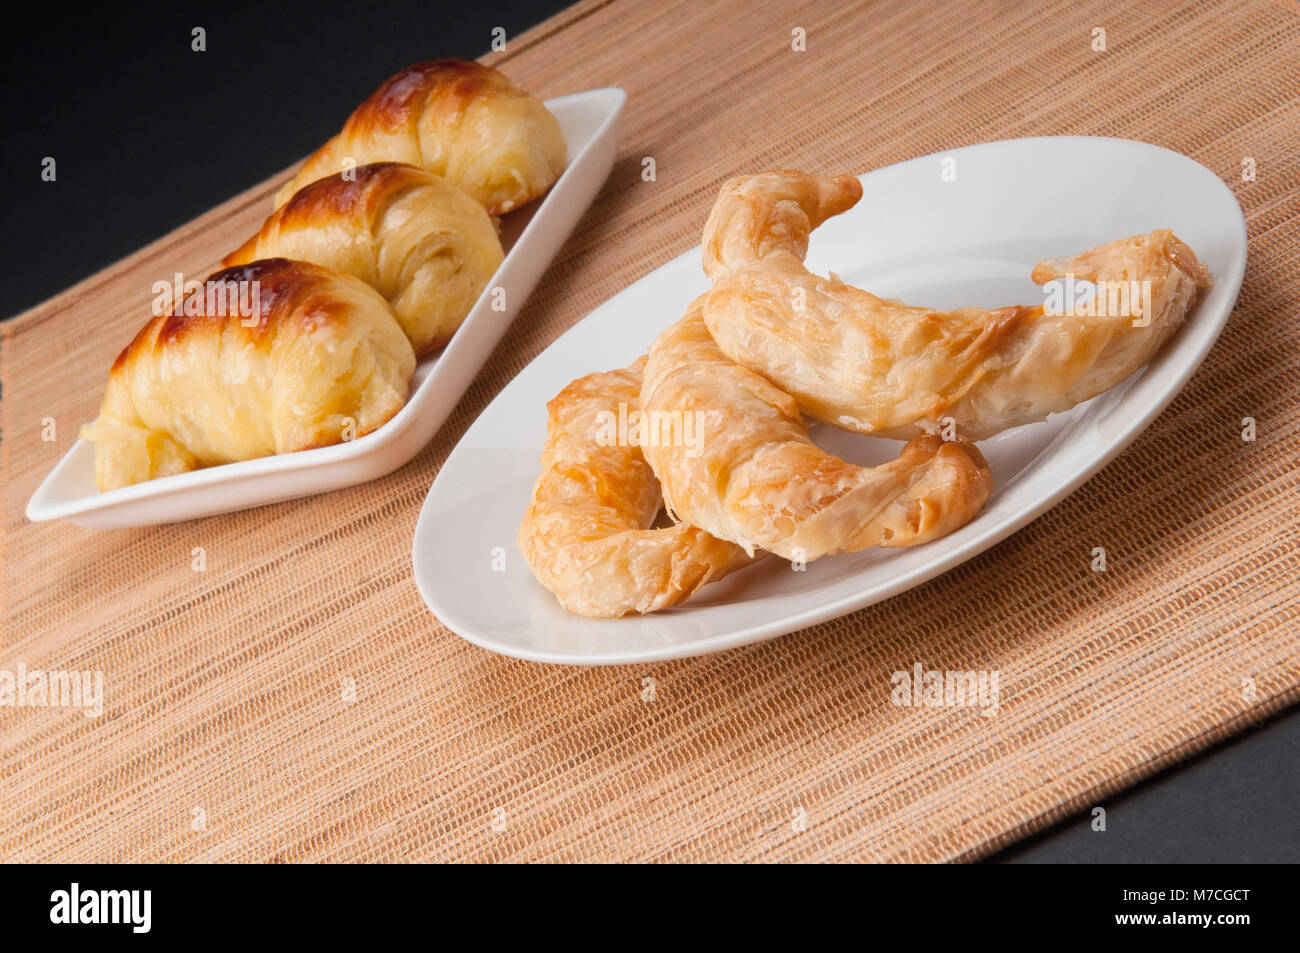 Close-up of croissants on platters - Stock Image